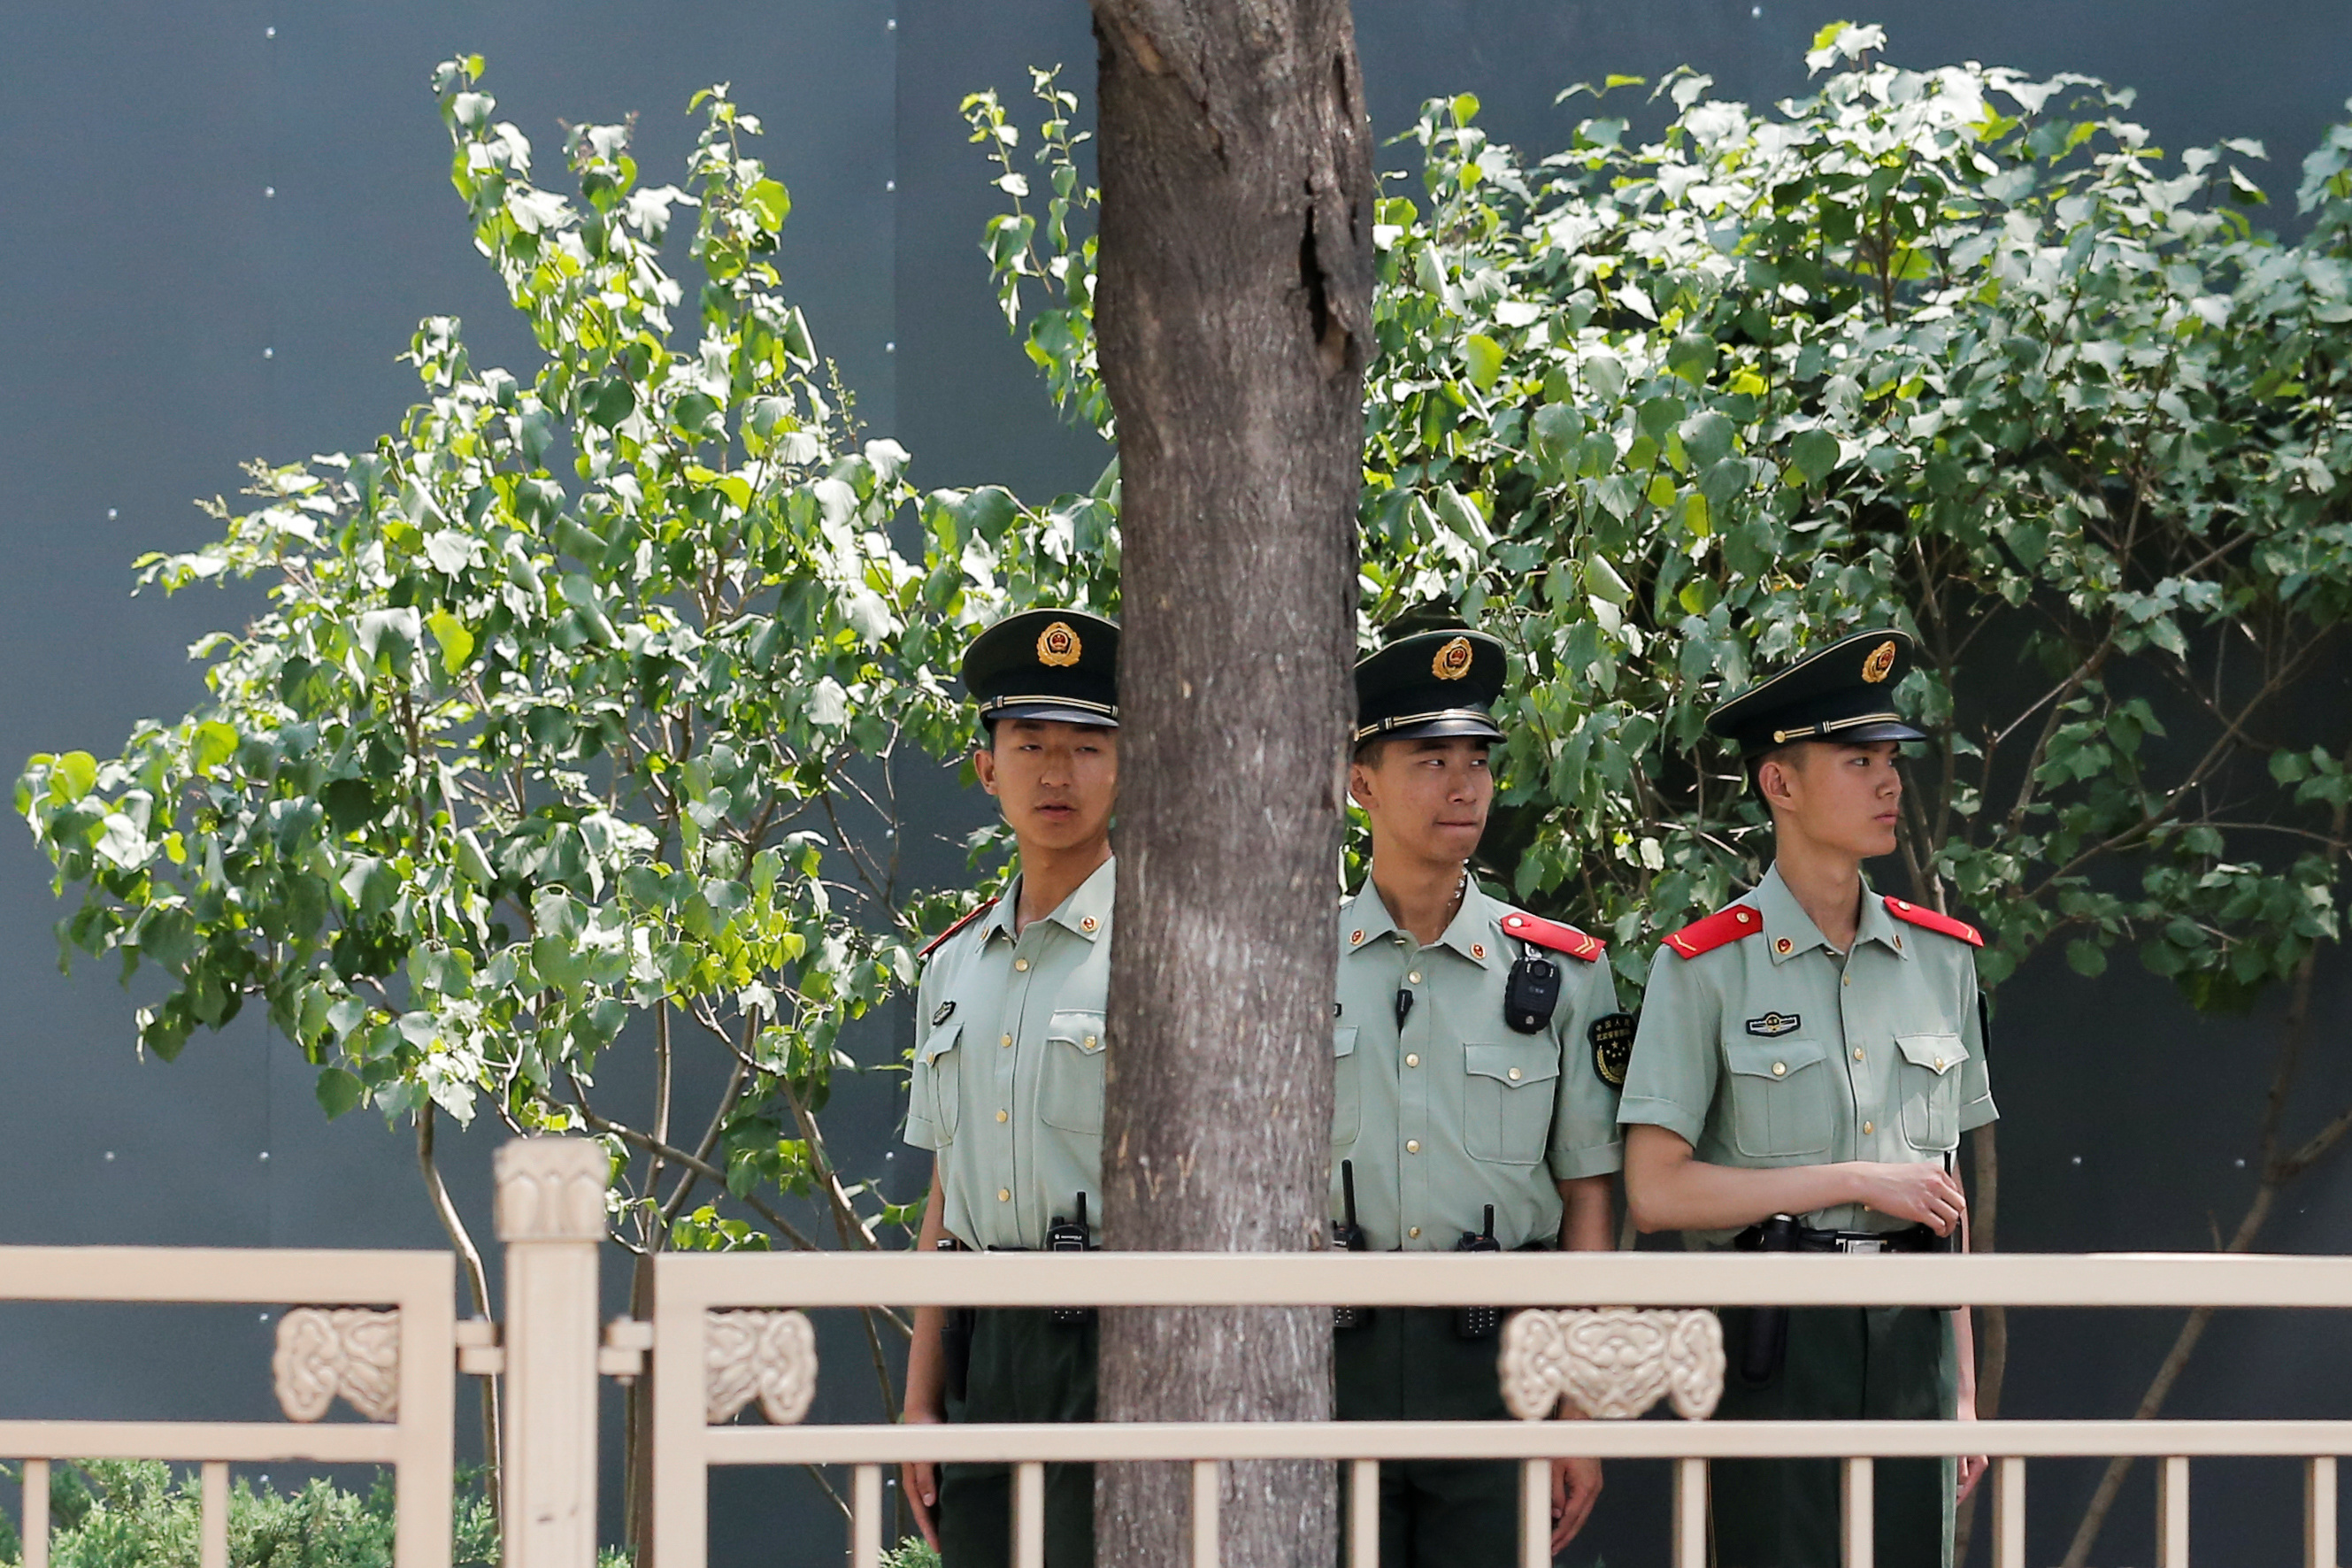 Paramilitary officers keep watch in Tiananmen Square in Beijing, China,June 4, 2019.